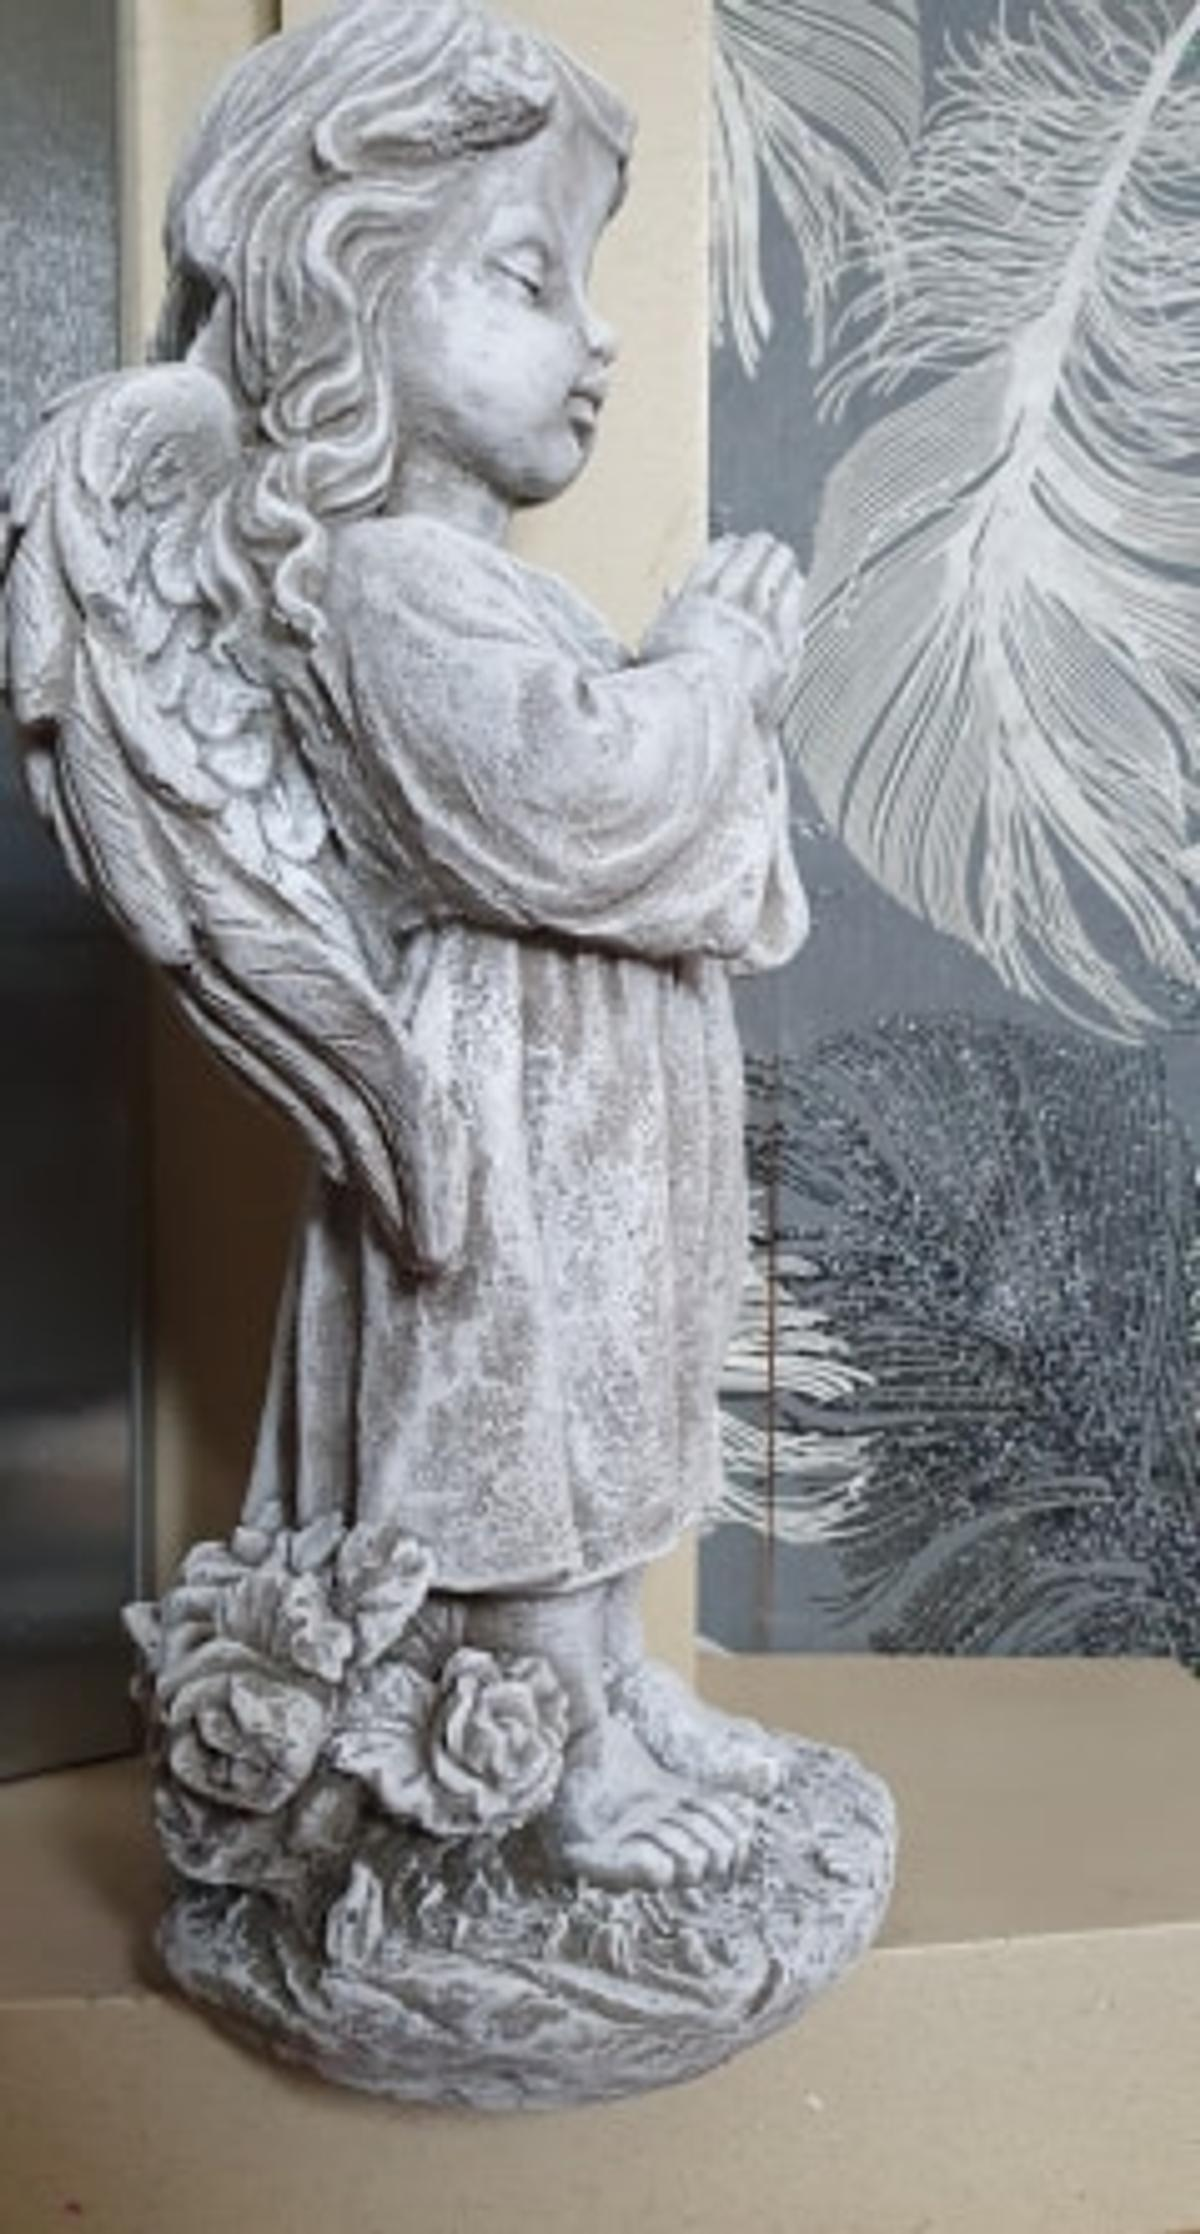 £12 each angel stone ornament is approximately 48 cm high 24 cm length 20 cm width Weight 11 kg These are £12 each All are garden ornaments are made from premium sand cement and stone with added frost protection